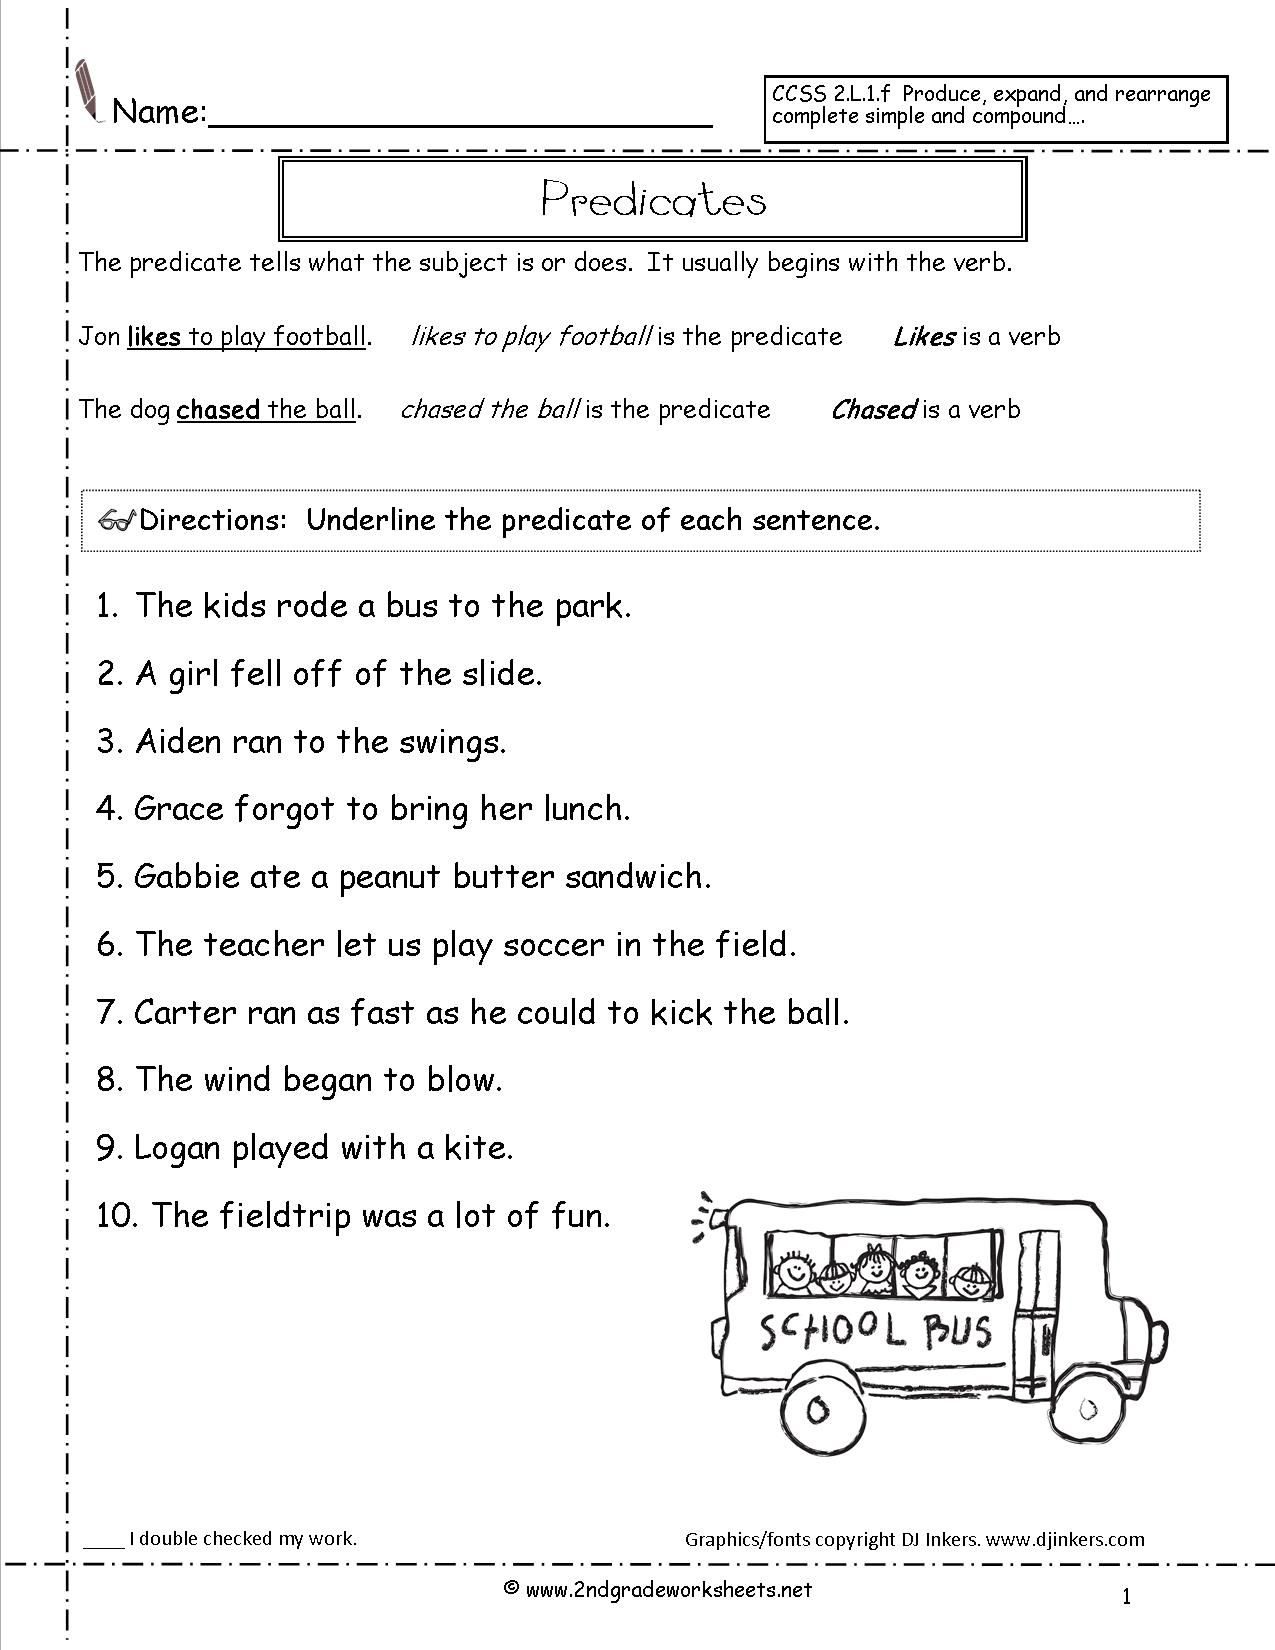 medium resolution of 4th Grade Simple Predicate Worksheet   Printable Worksheets and Activities  for Teachers